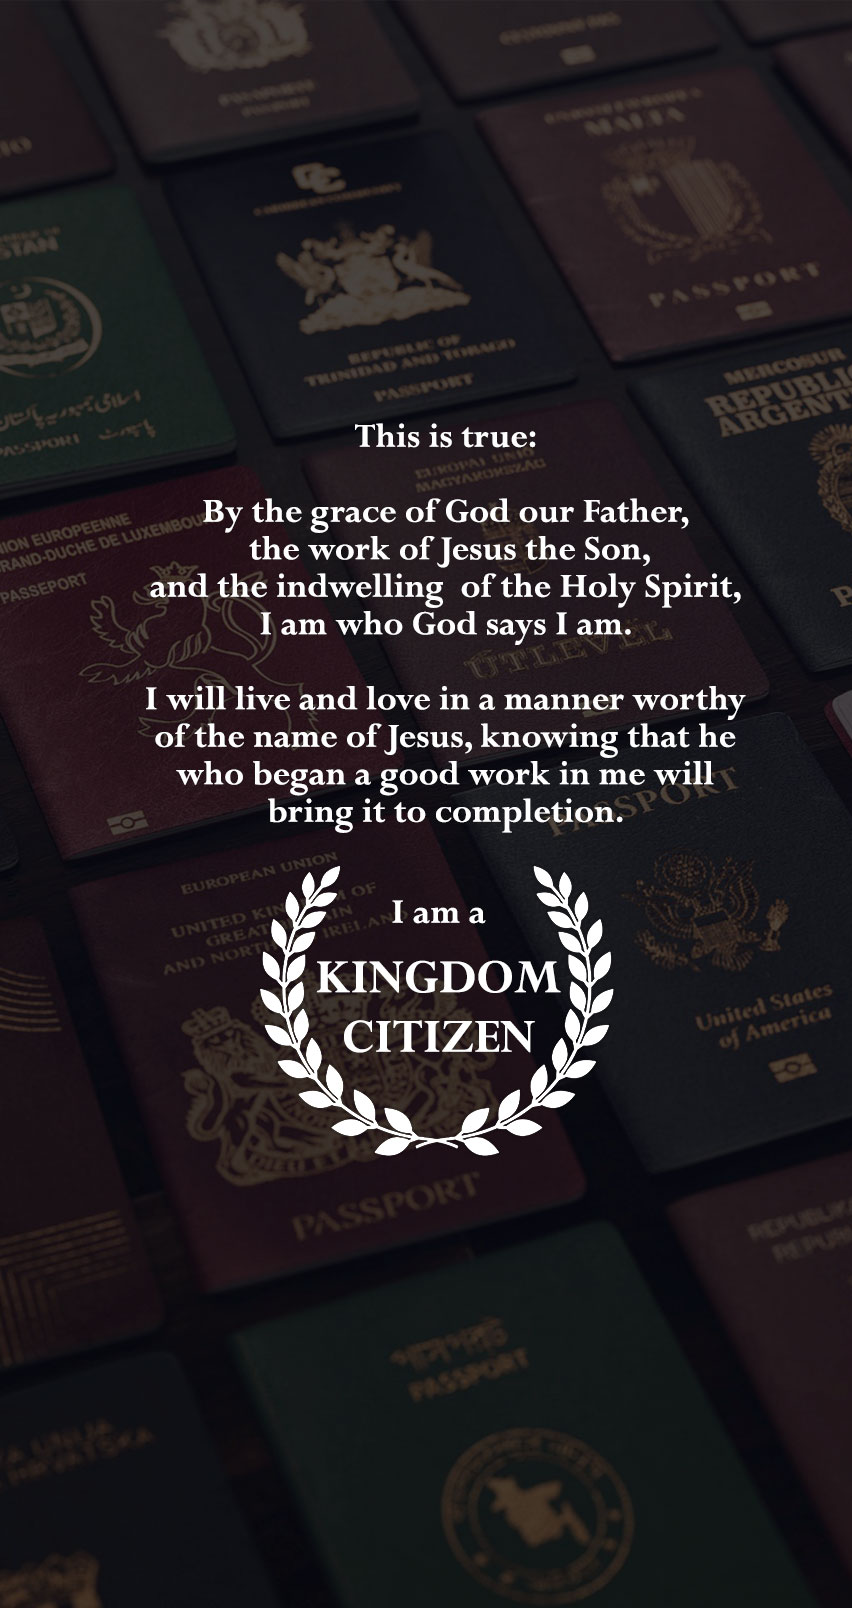 Kingdom-Citizen-Litany-Wallpaper-9.jpg